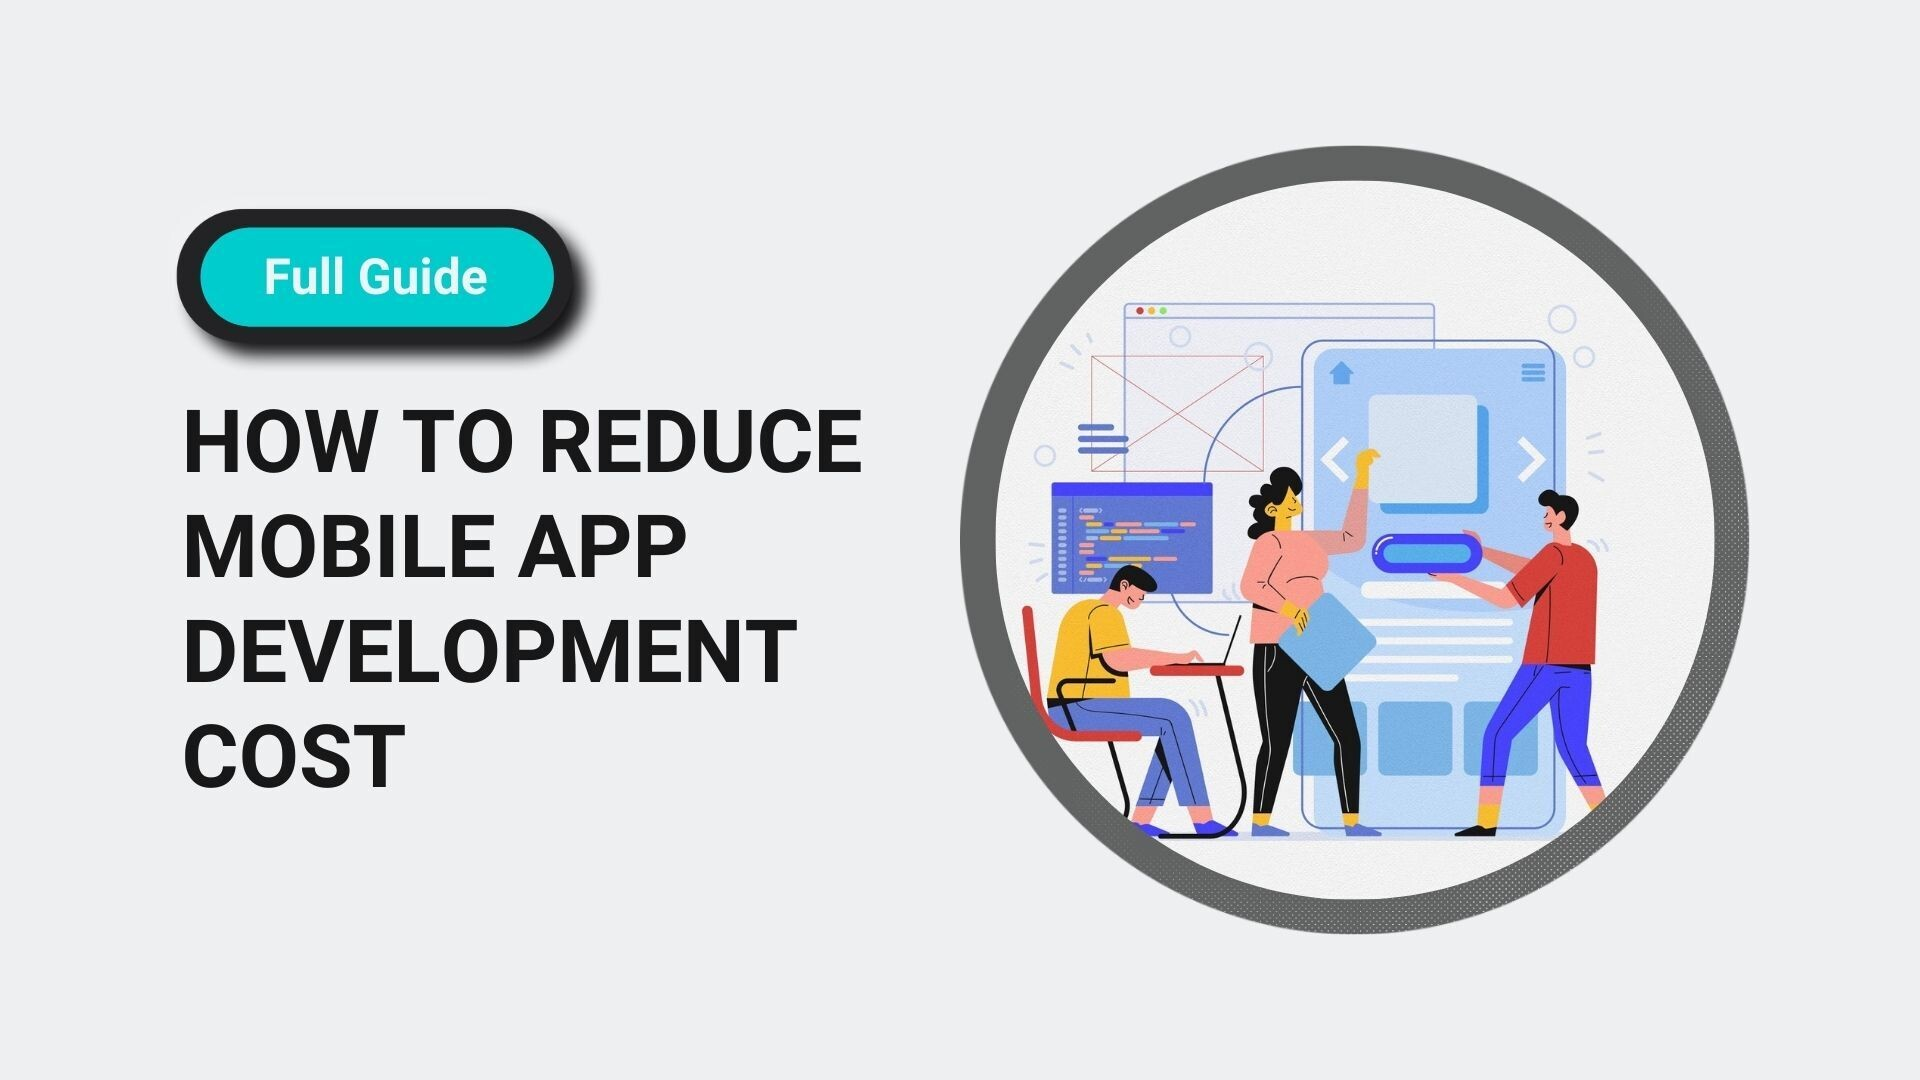 How To Reduce Mobile App Development Cost Without Losing Essential Features And Quality